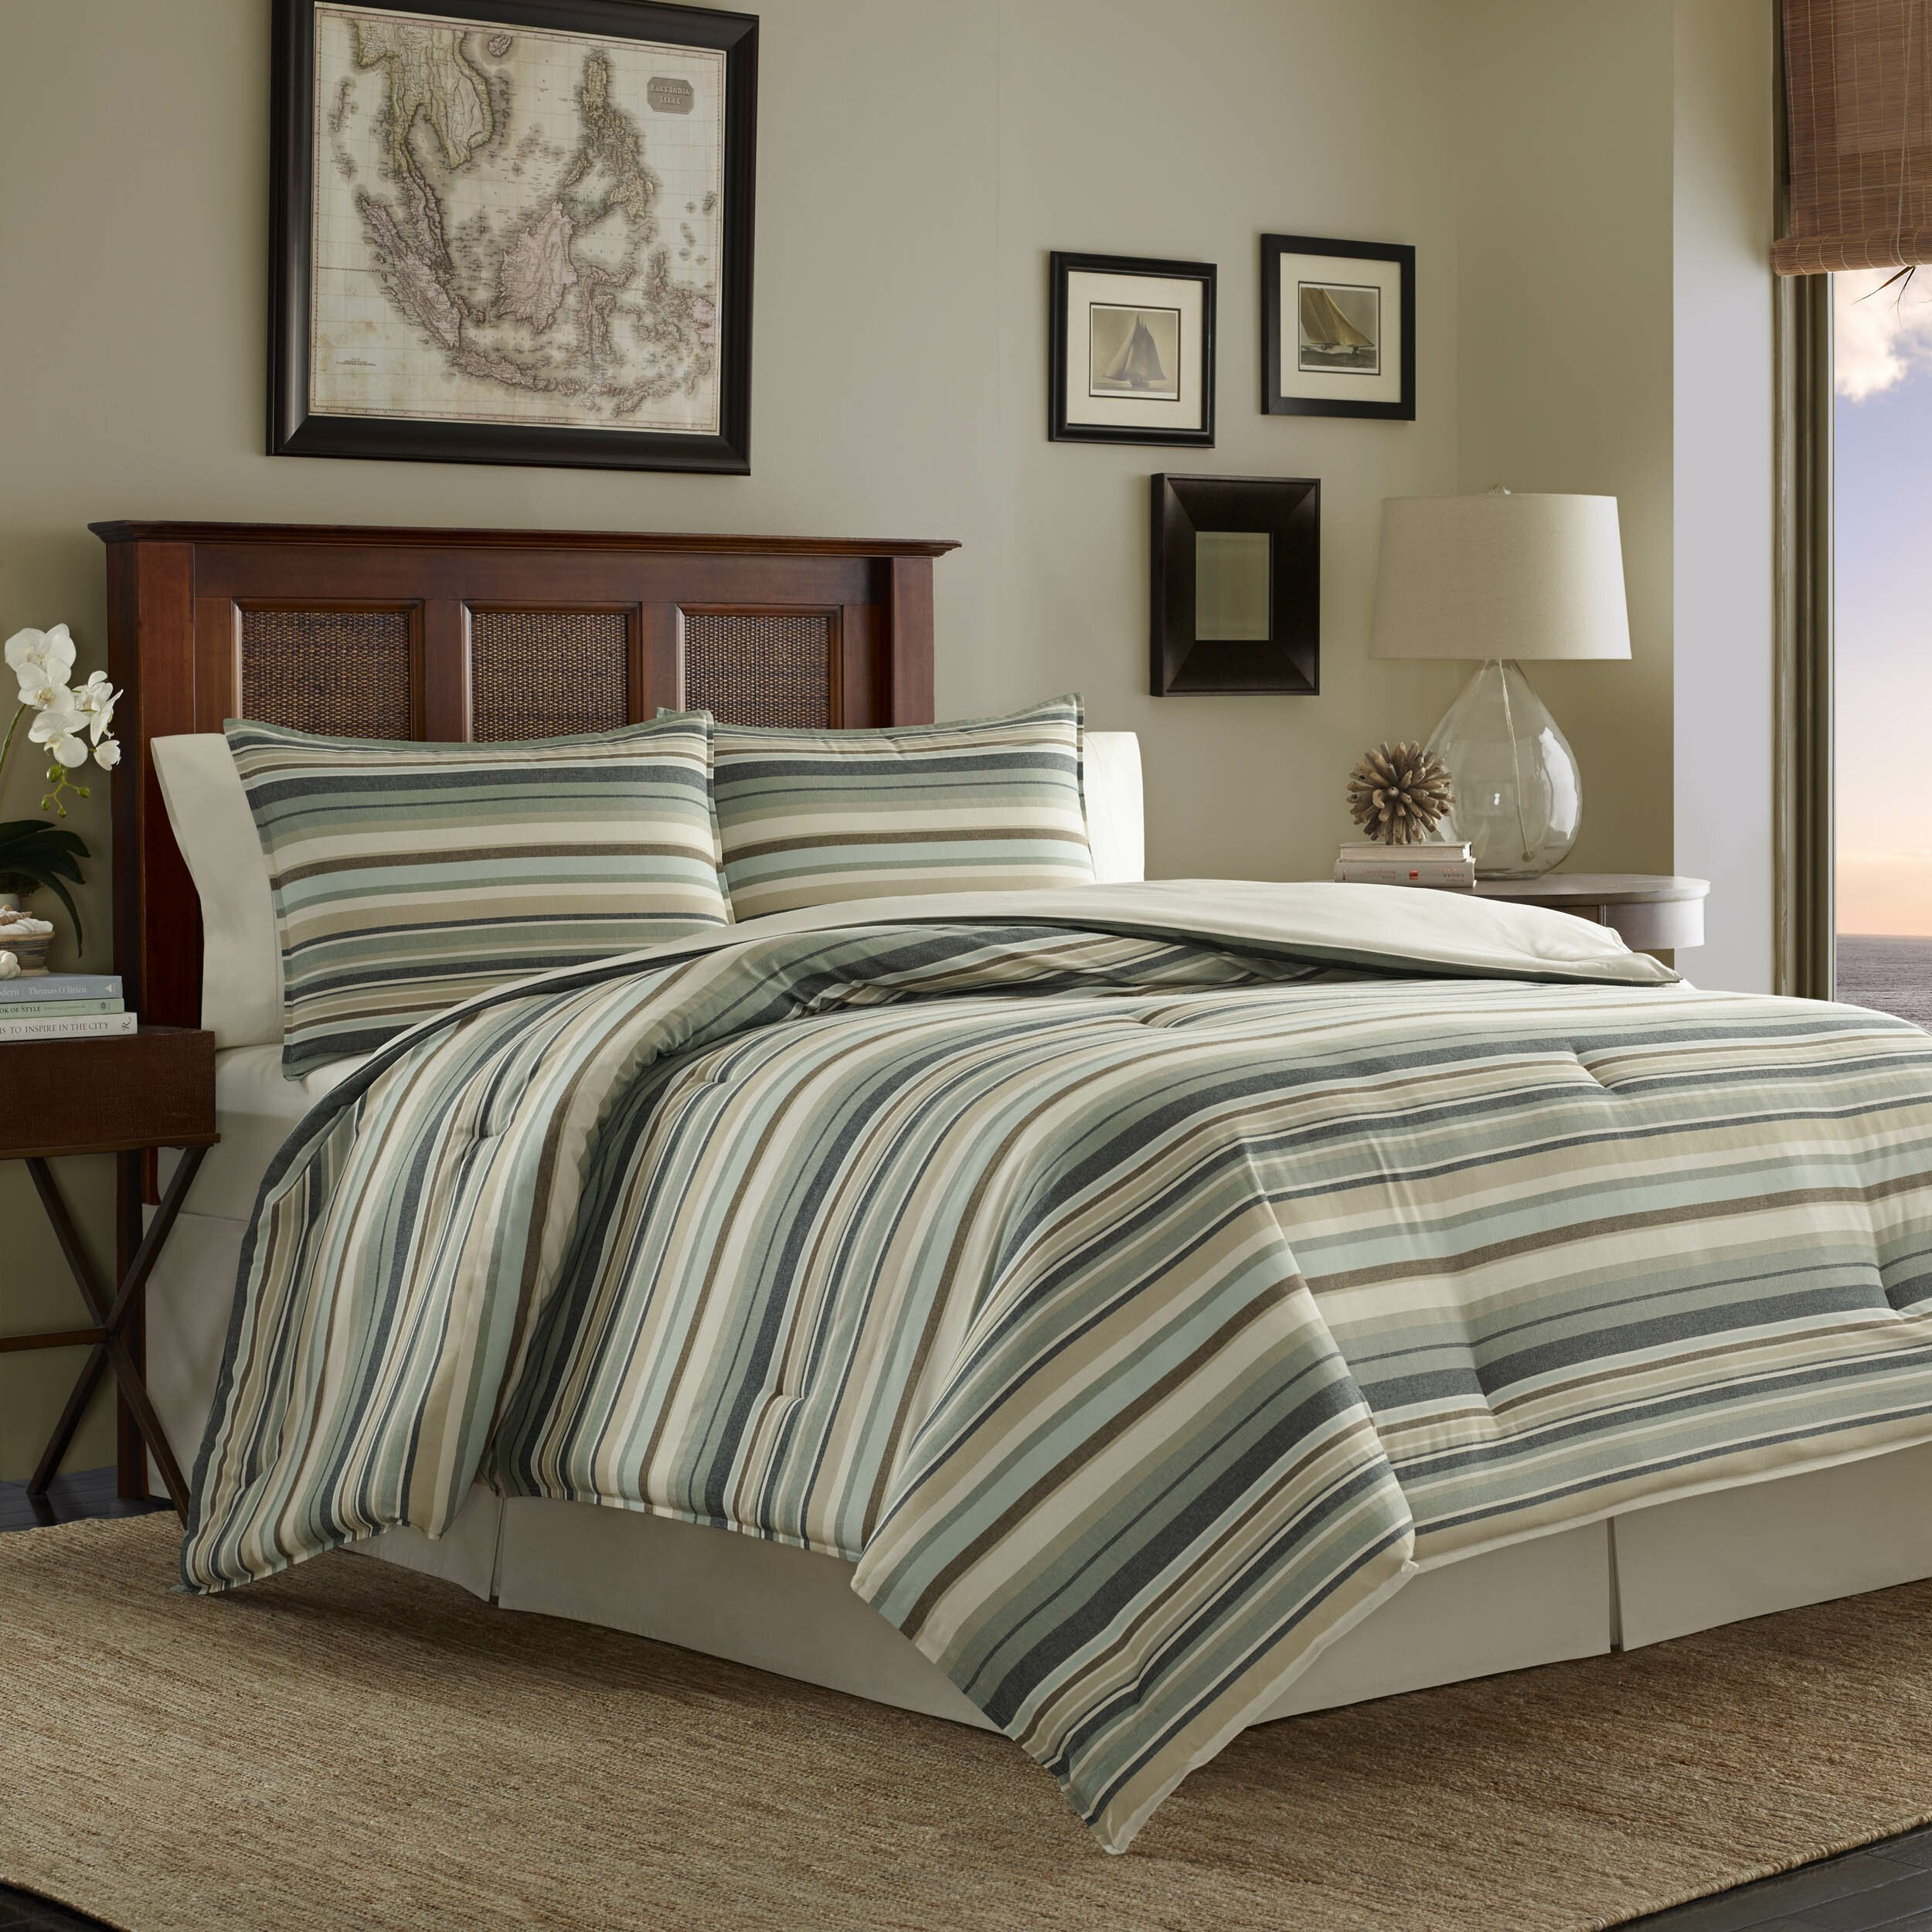 Tommy bahama bedding canvas stripe 3 piece duvet cover set Tommy bahama bedding